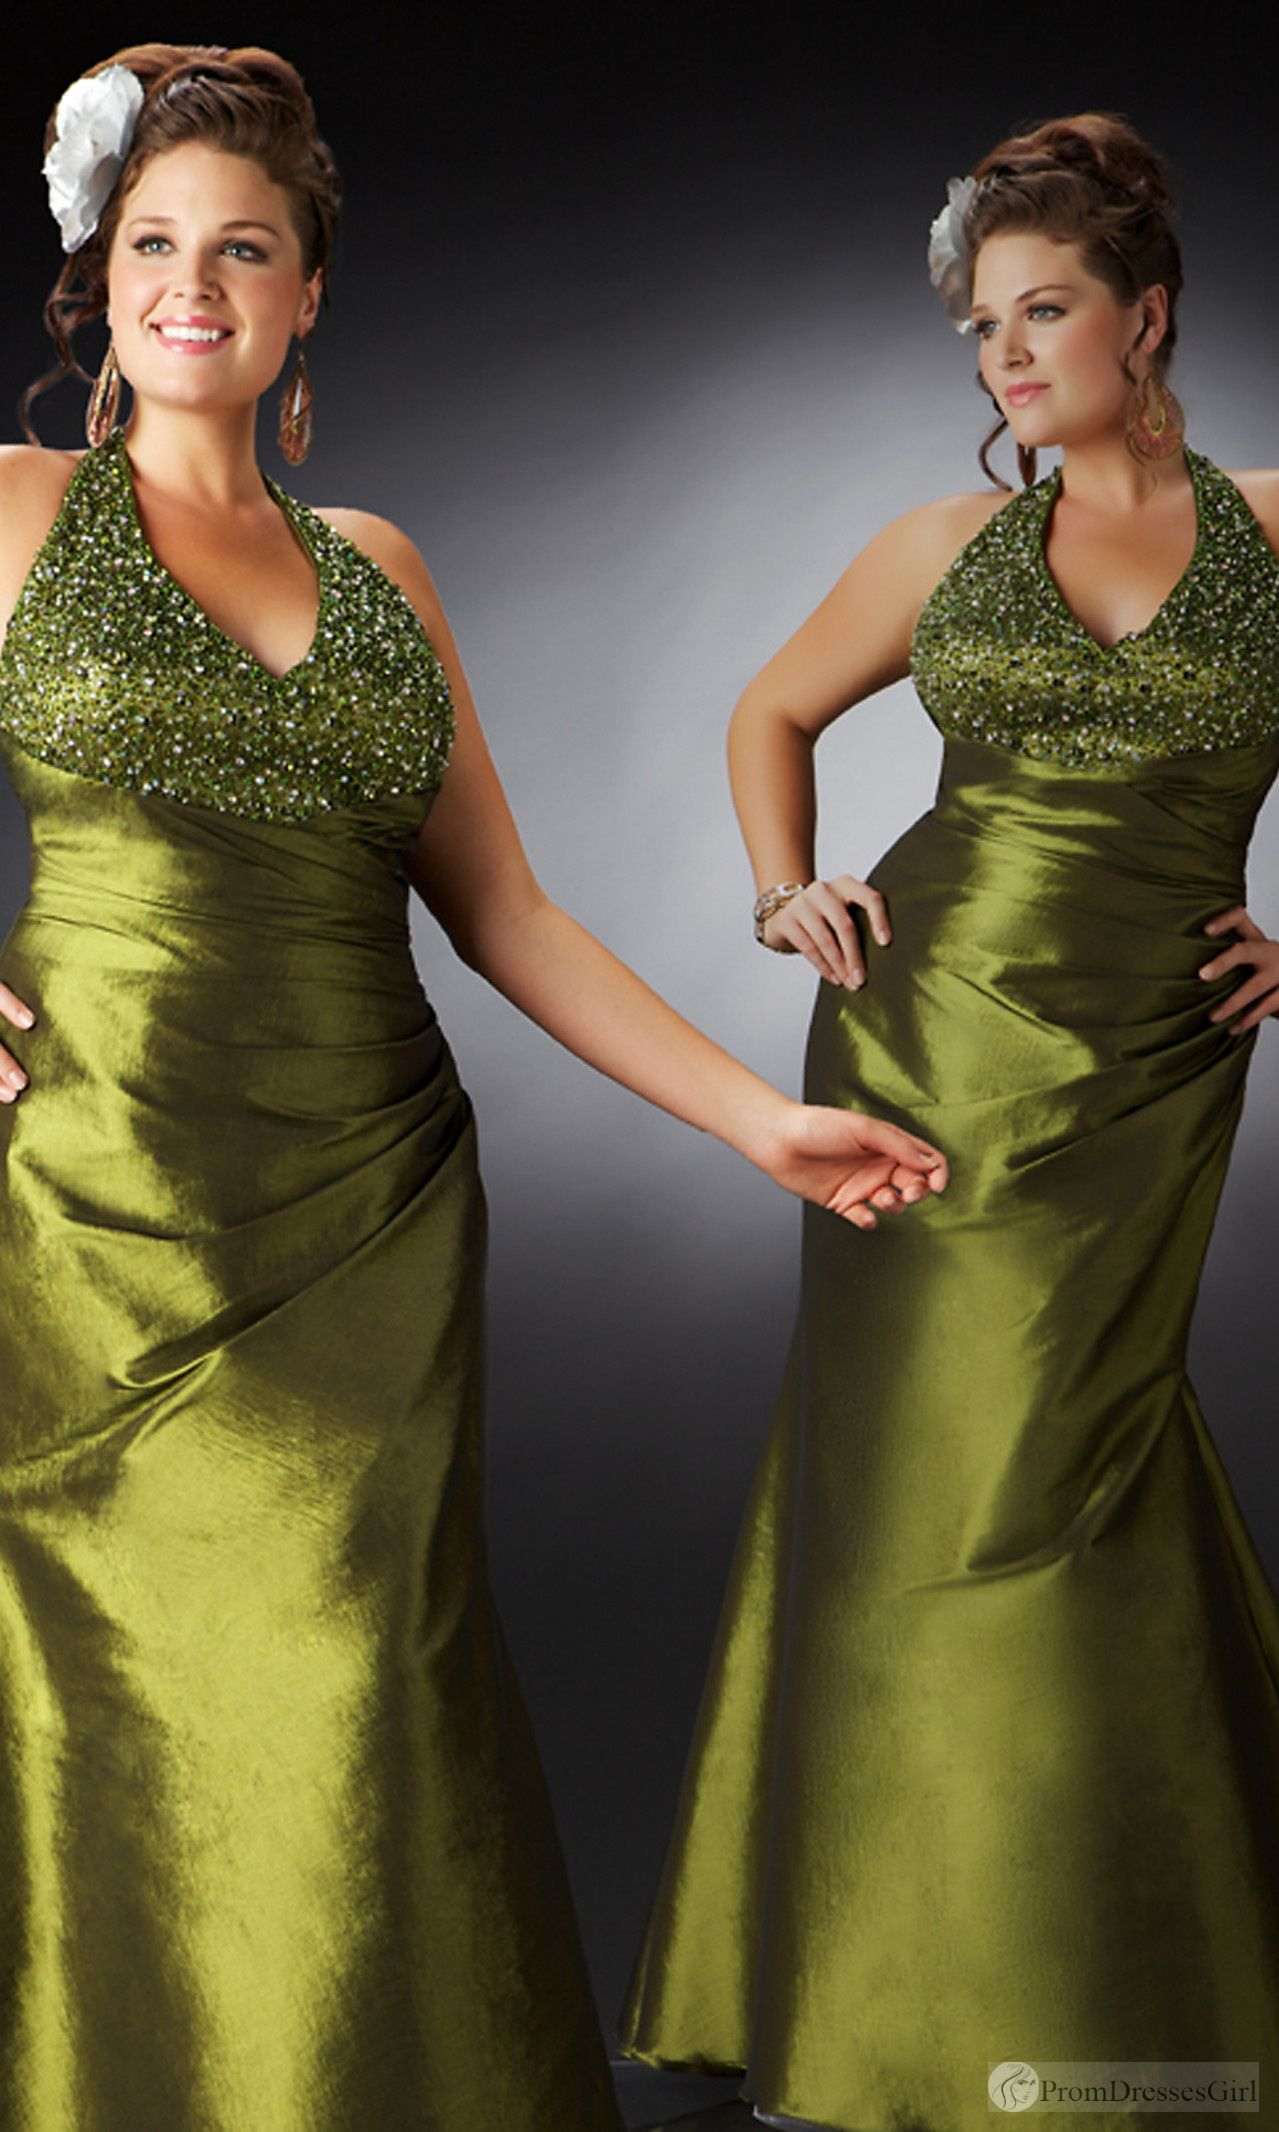 Plus size prom dress formal pinterest prom prom ideas and